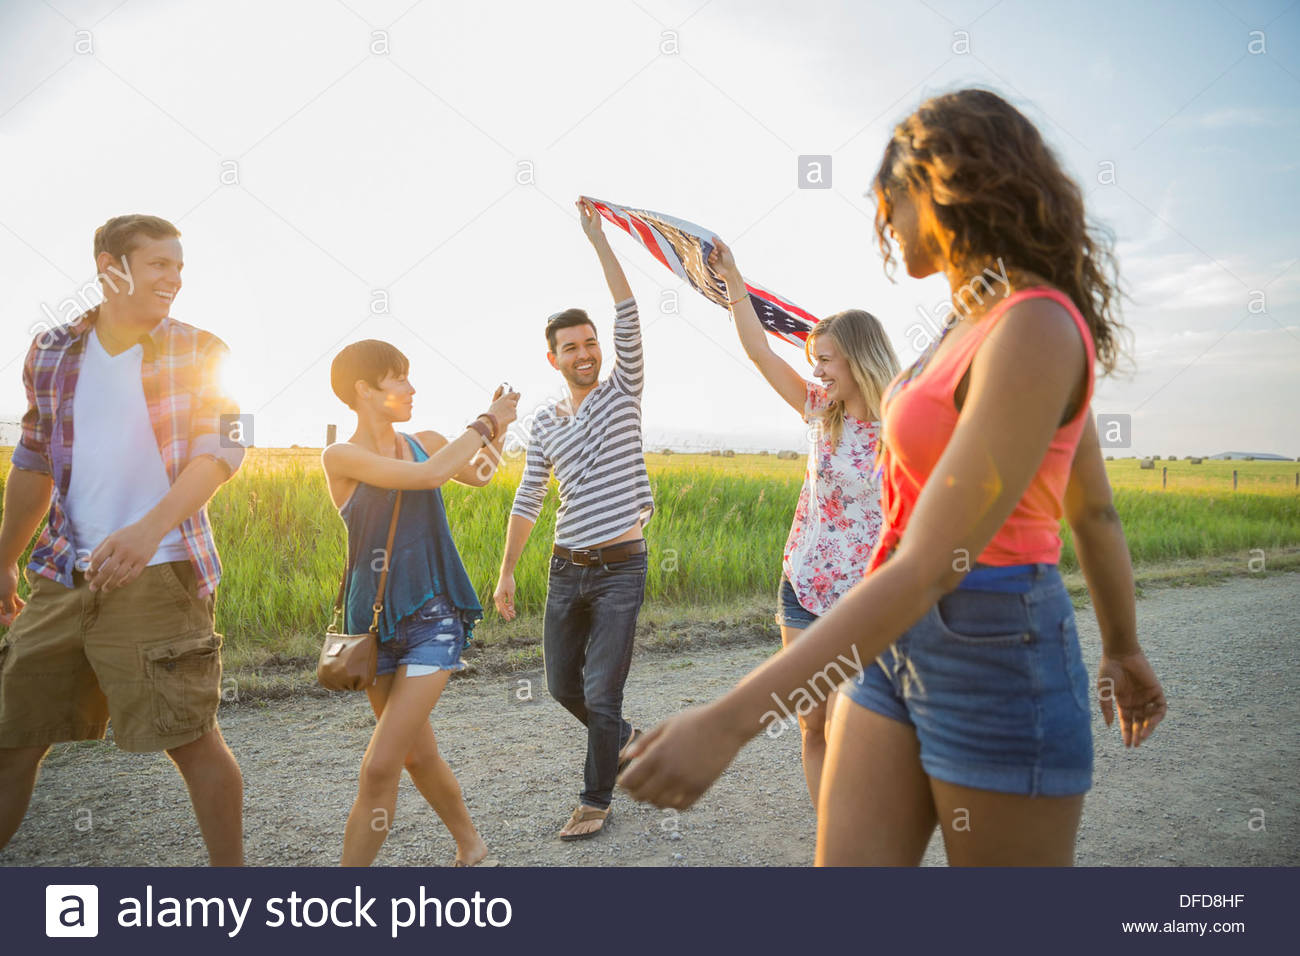 Friends holding up an American flag outdoors - Stock Image